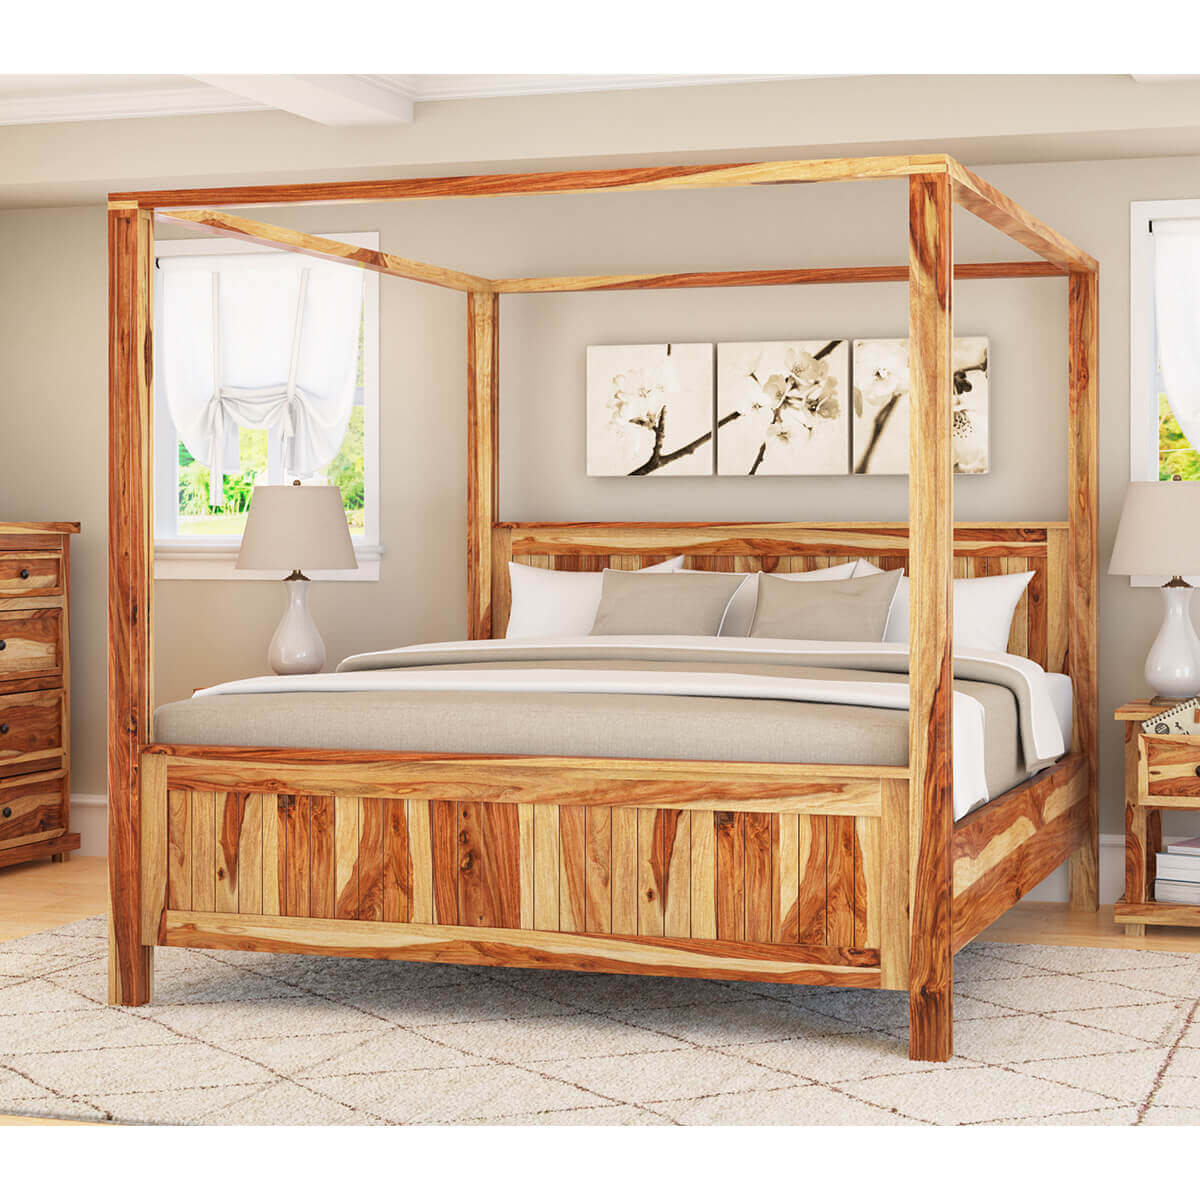 Levik Rustic Sheesham Solid Wood 4 Poster Bed My Furniture Town